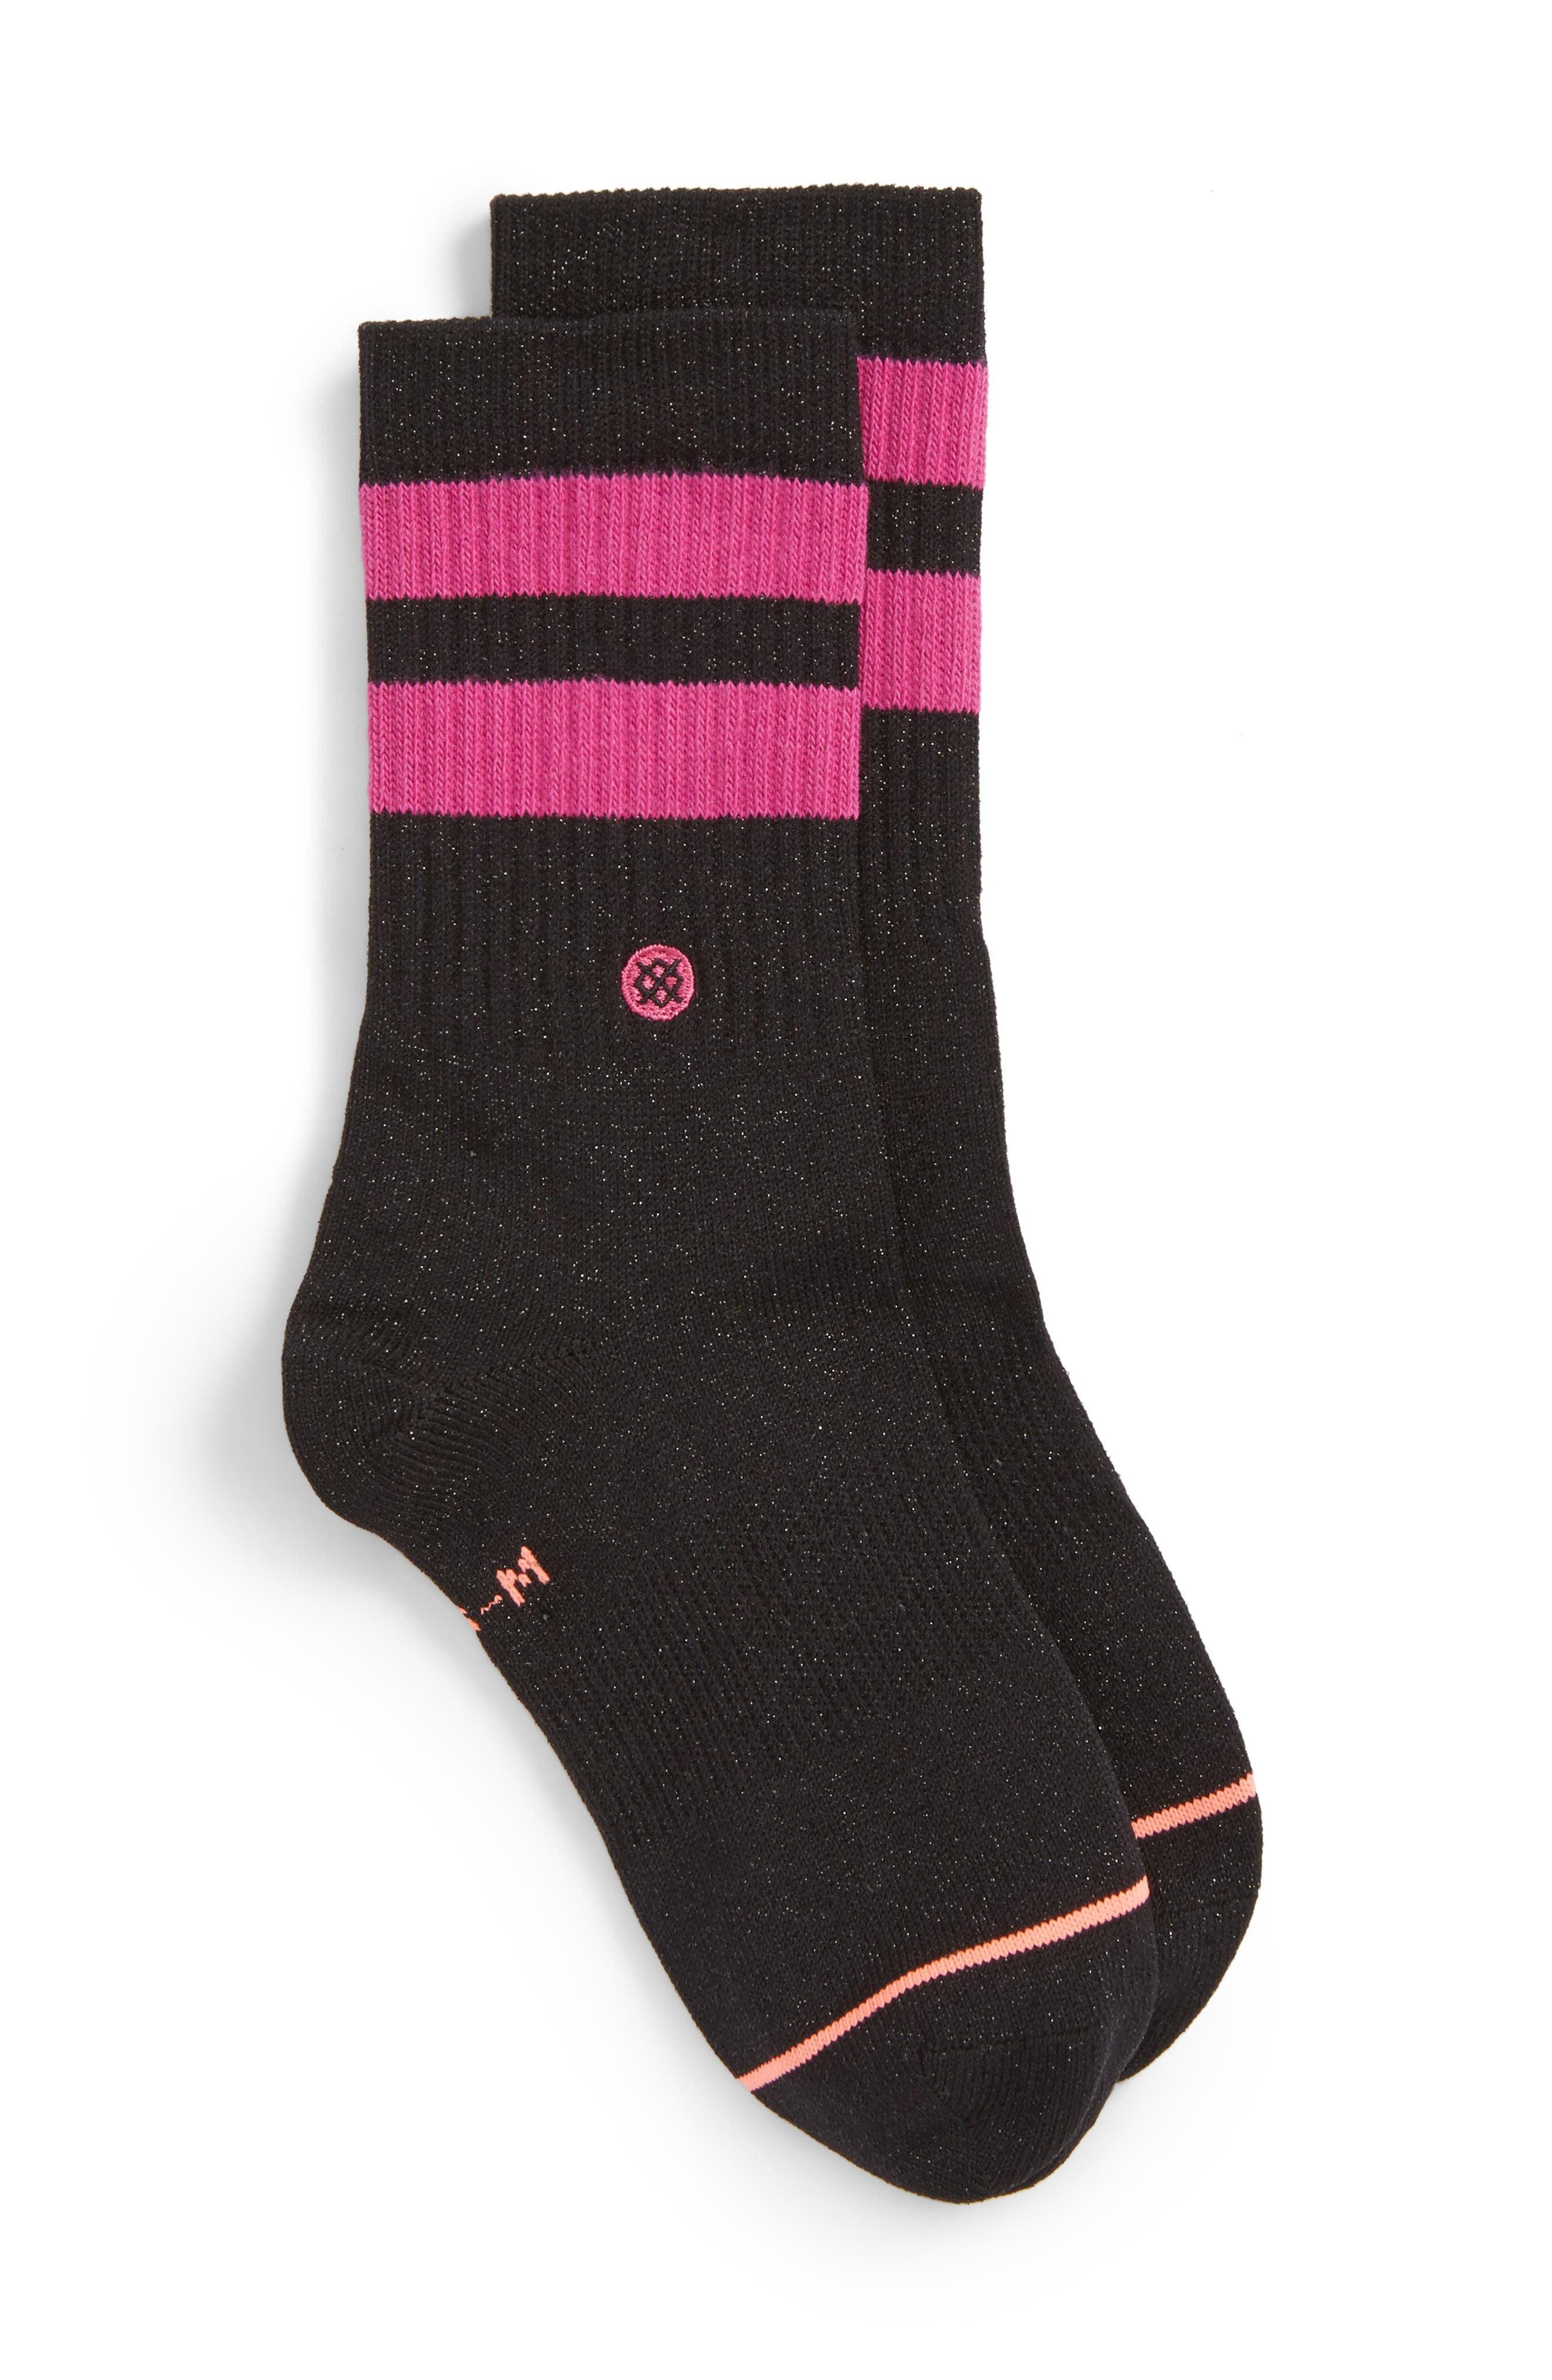 Harmony Crew Socks,                         Main,                         color, Black